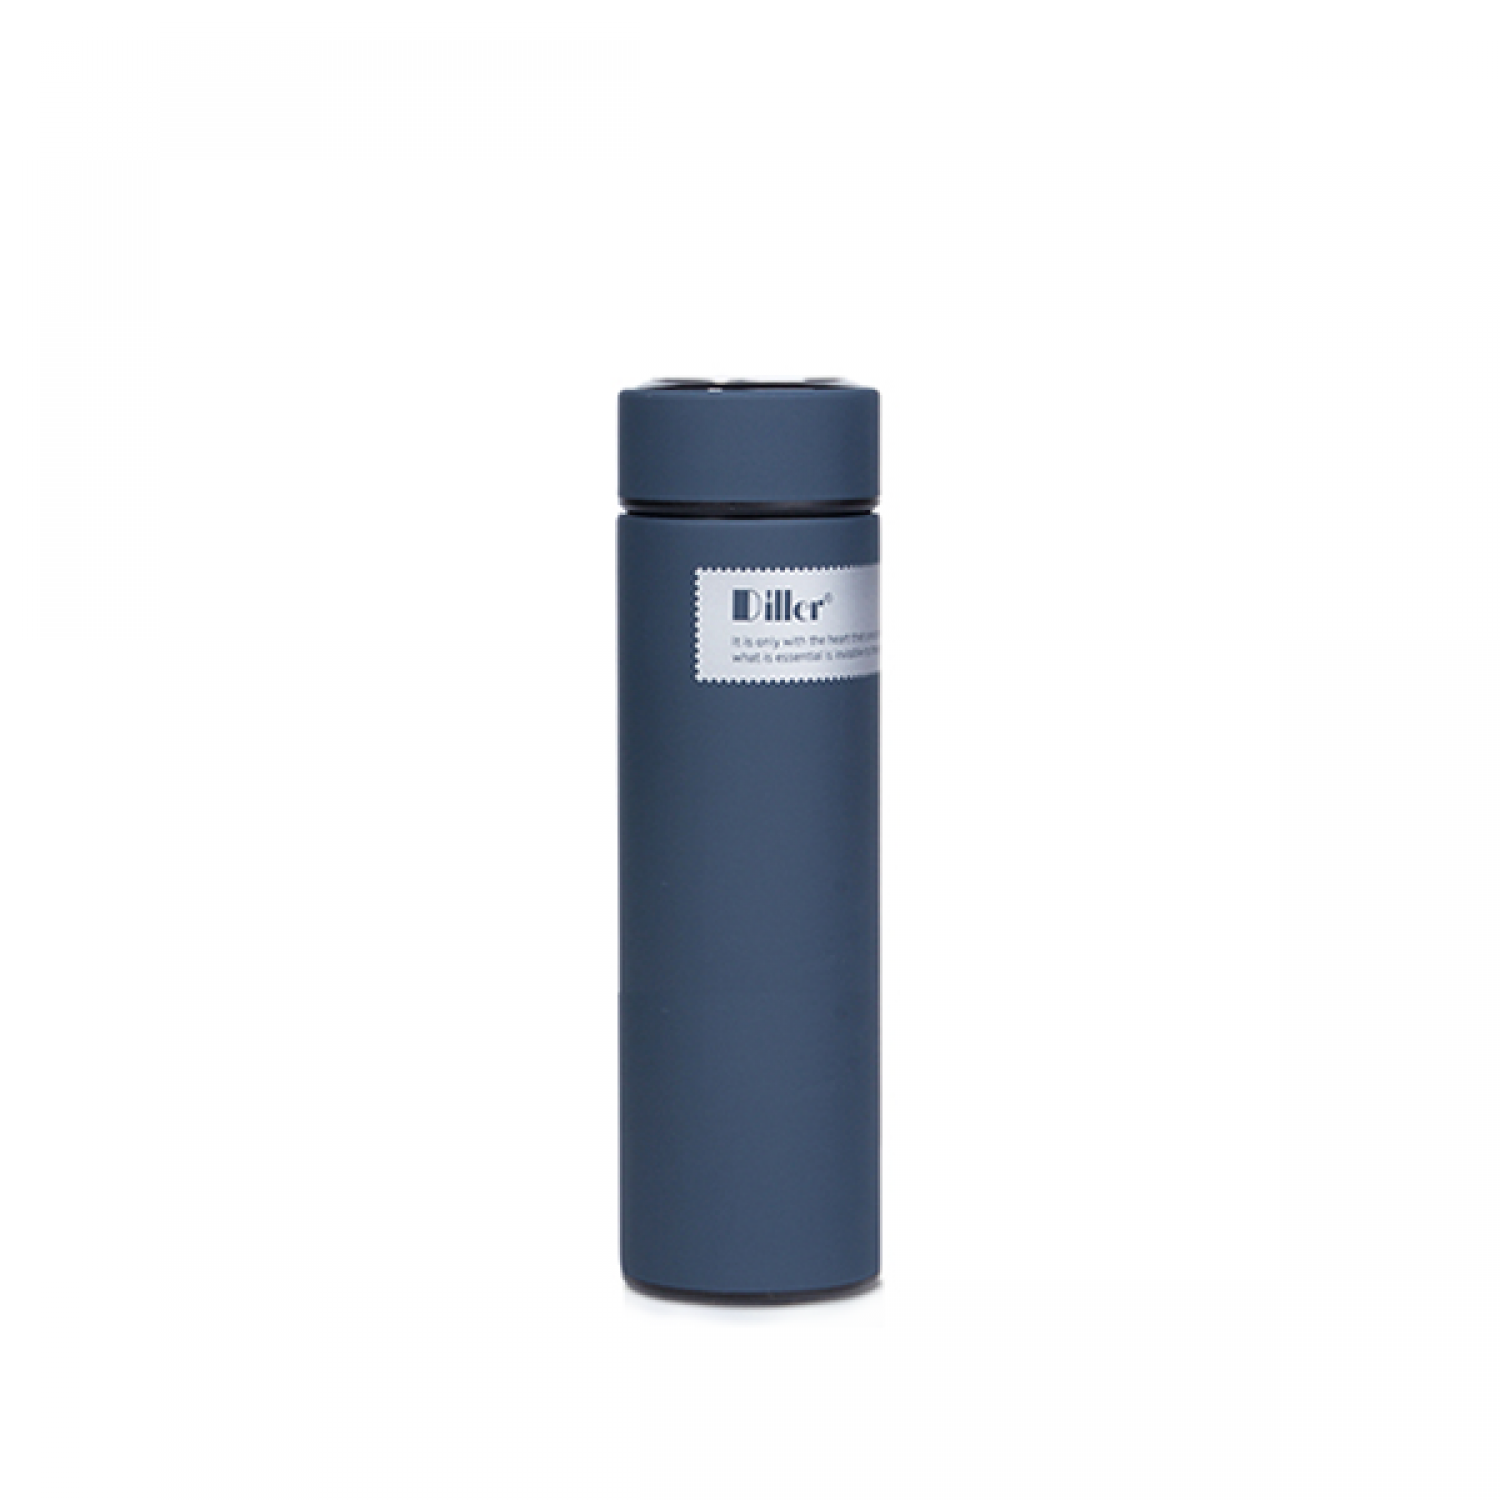 Diller - MLH8568 Vacuum Flasks & Thermos